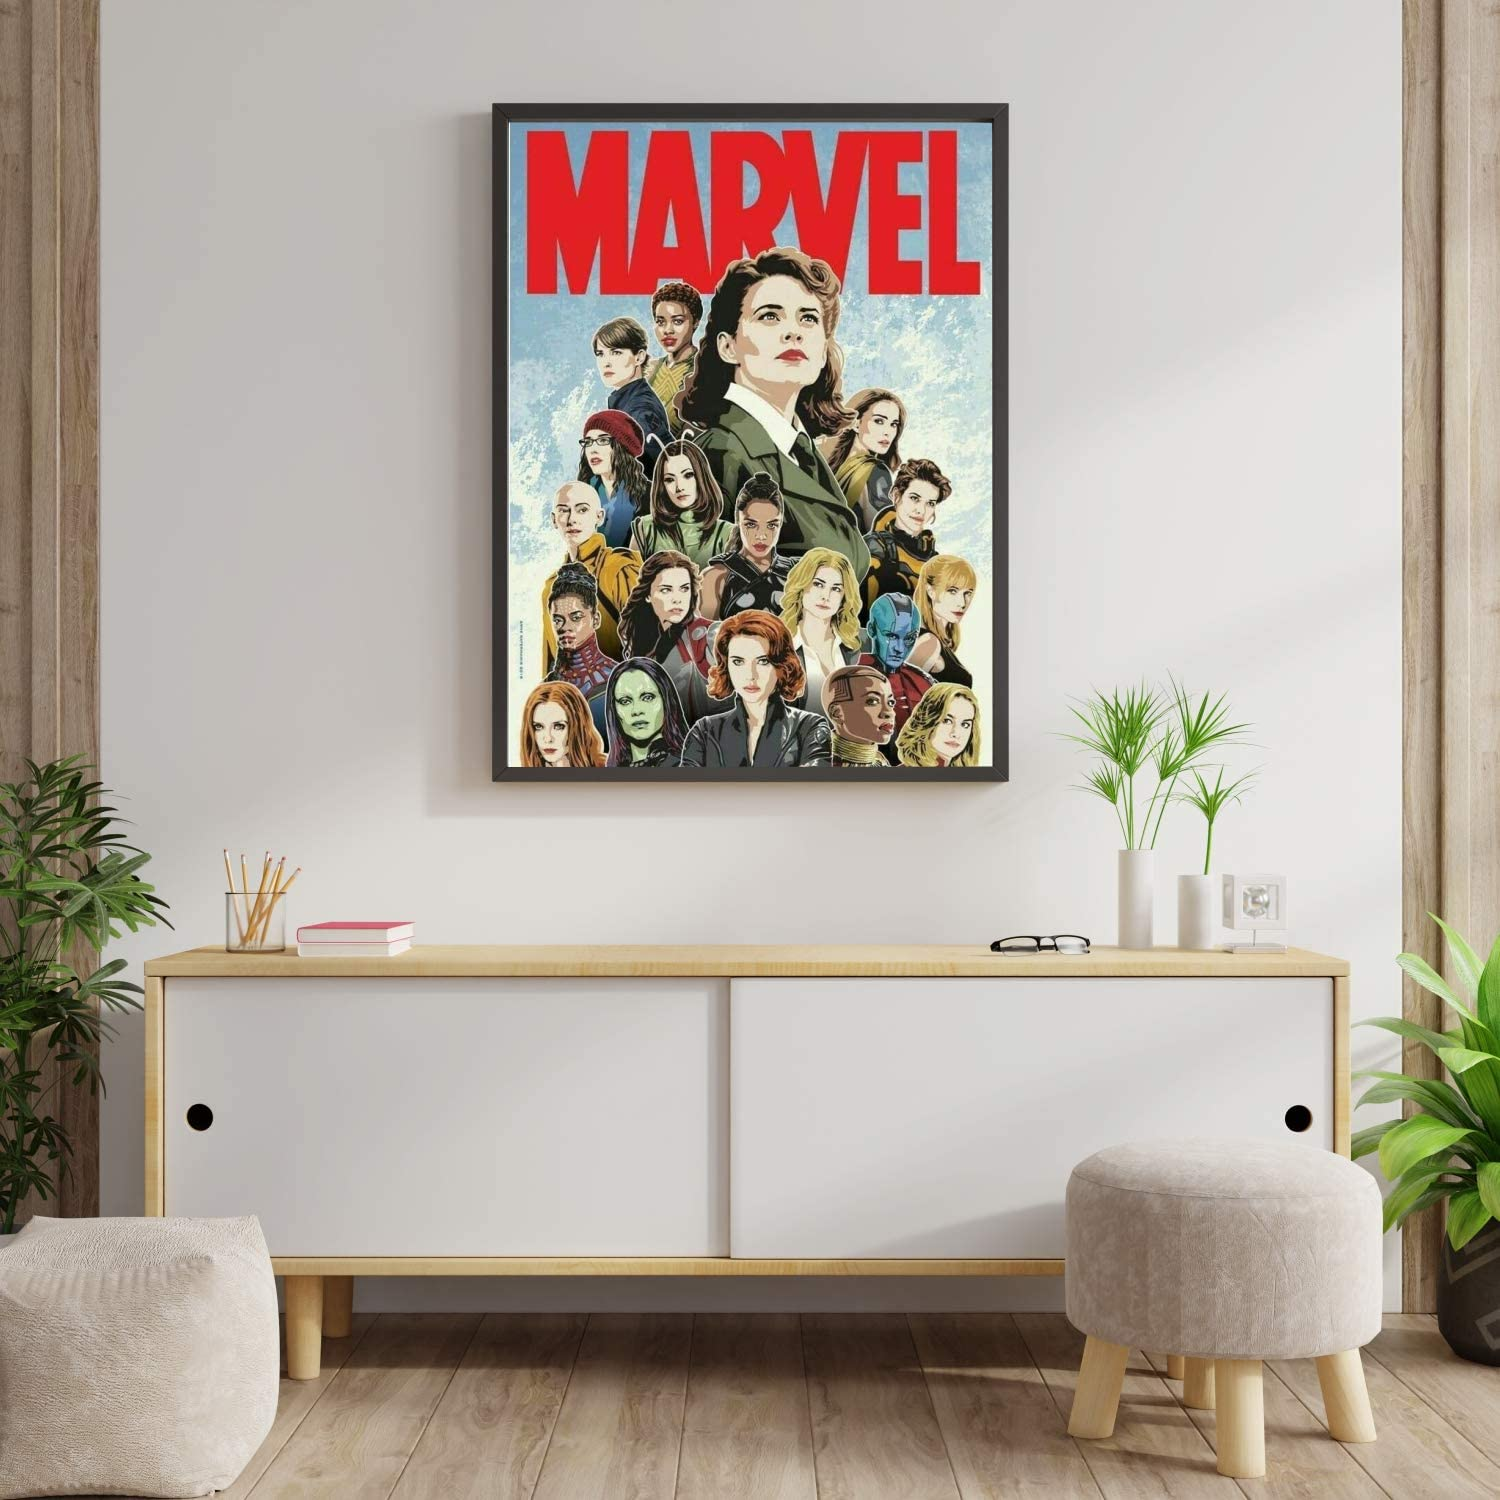 Compatible with Marvel Women Comic Superheroines Film Black Widow Scarlet Witch Gomora Poster Cool Guys Girls Dorm Wall Decor, Unique Design, Unframed Wall Art, Size - 11